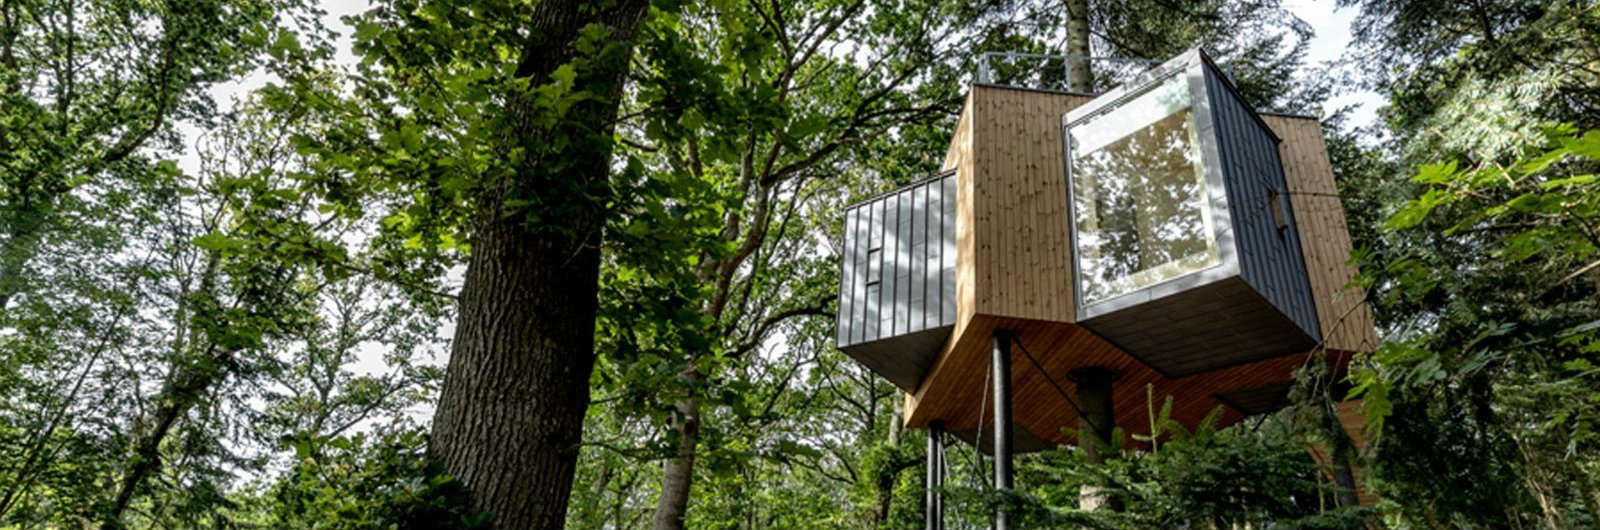 This Treetop Hotel Lies Above a Danish Forest